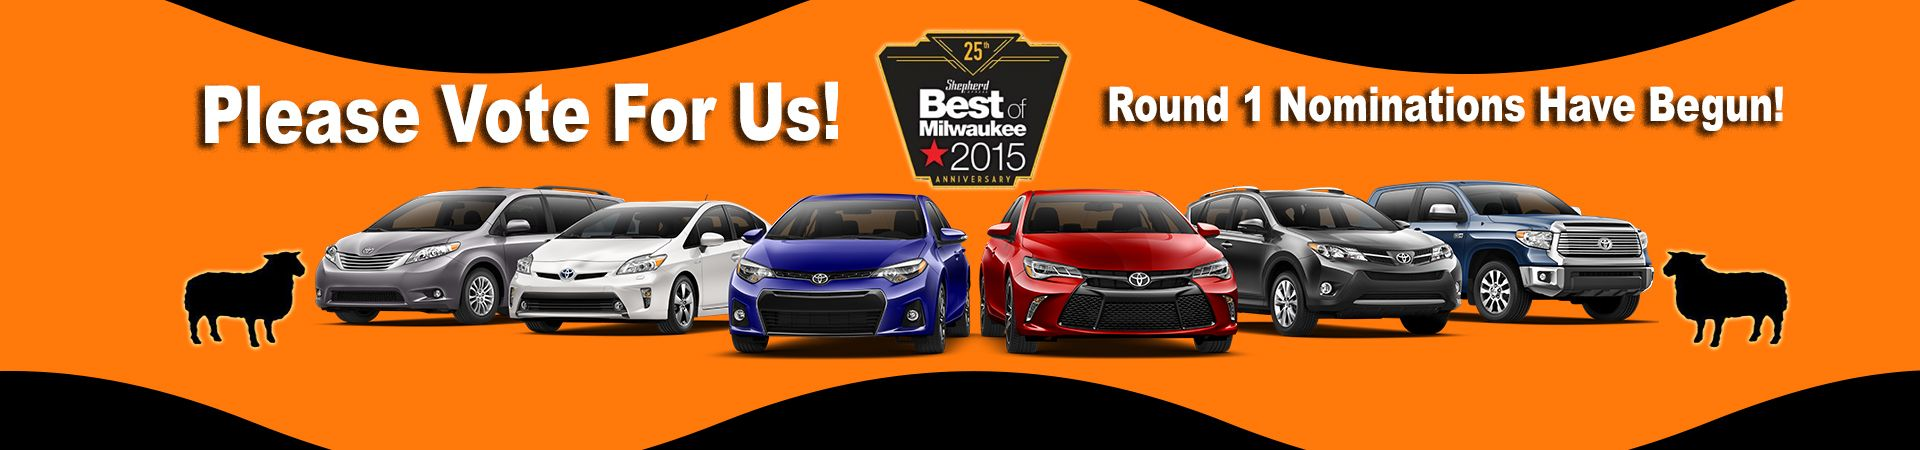 Celebrate halloween with great used car deals at andrew toyota scion near milwaukee wi our blog posts pinterest scion toyota and cars